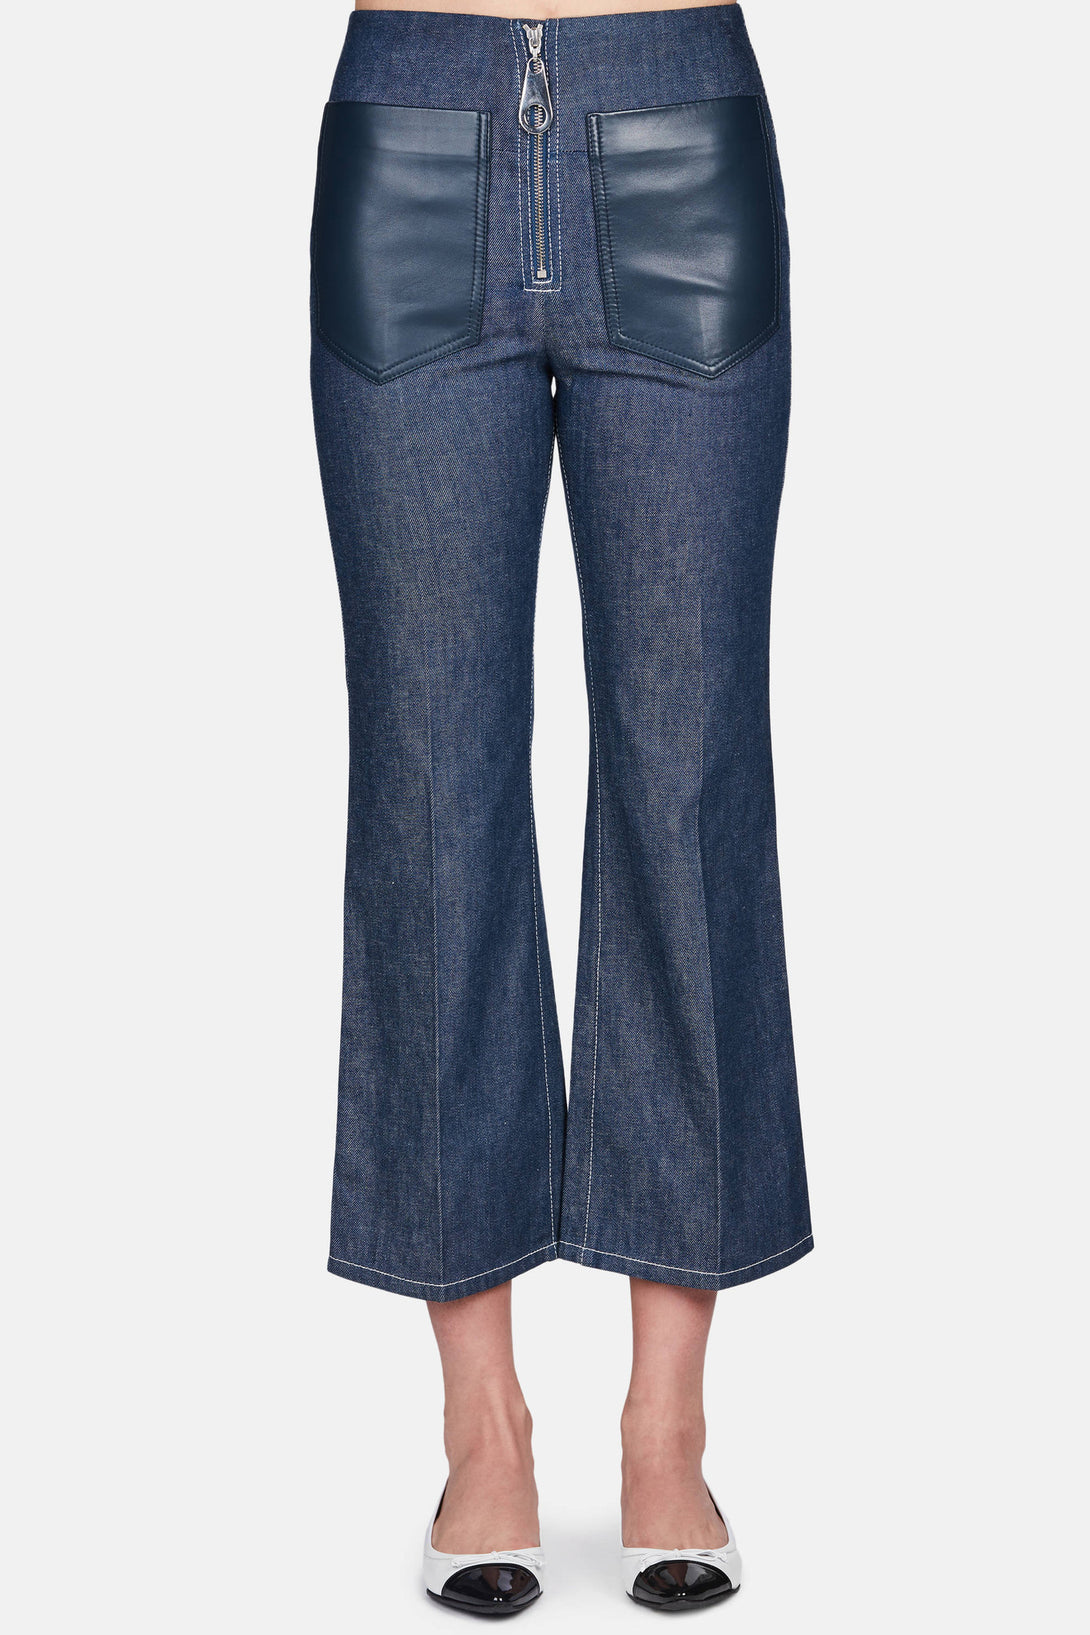 Denim Flared Pant - Cobalt